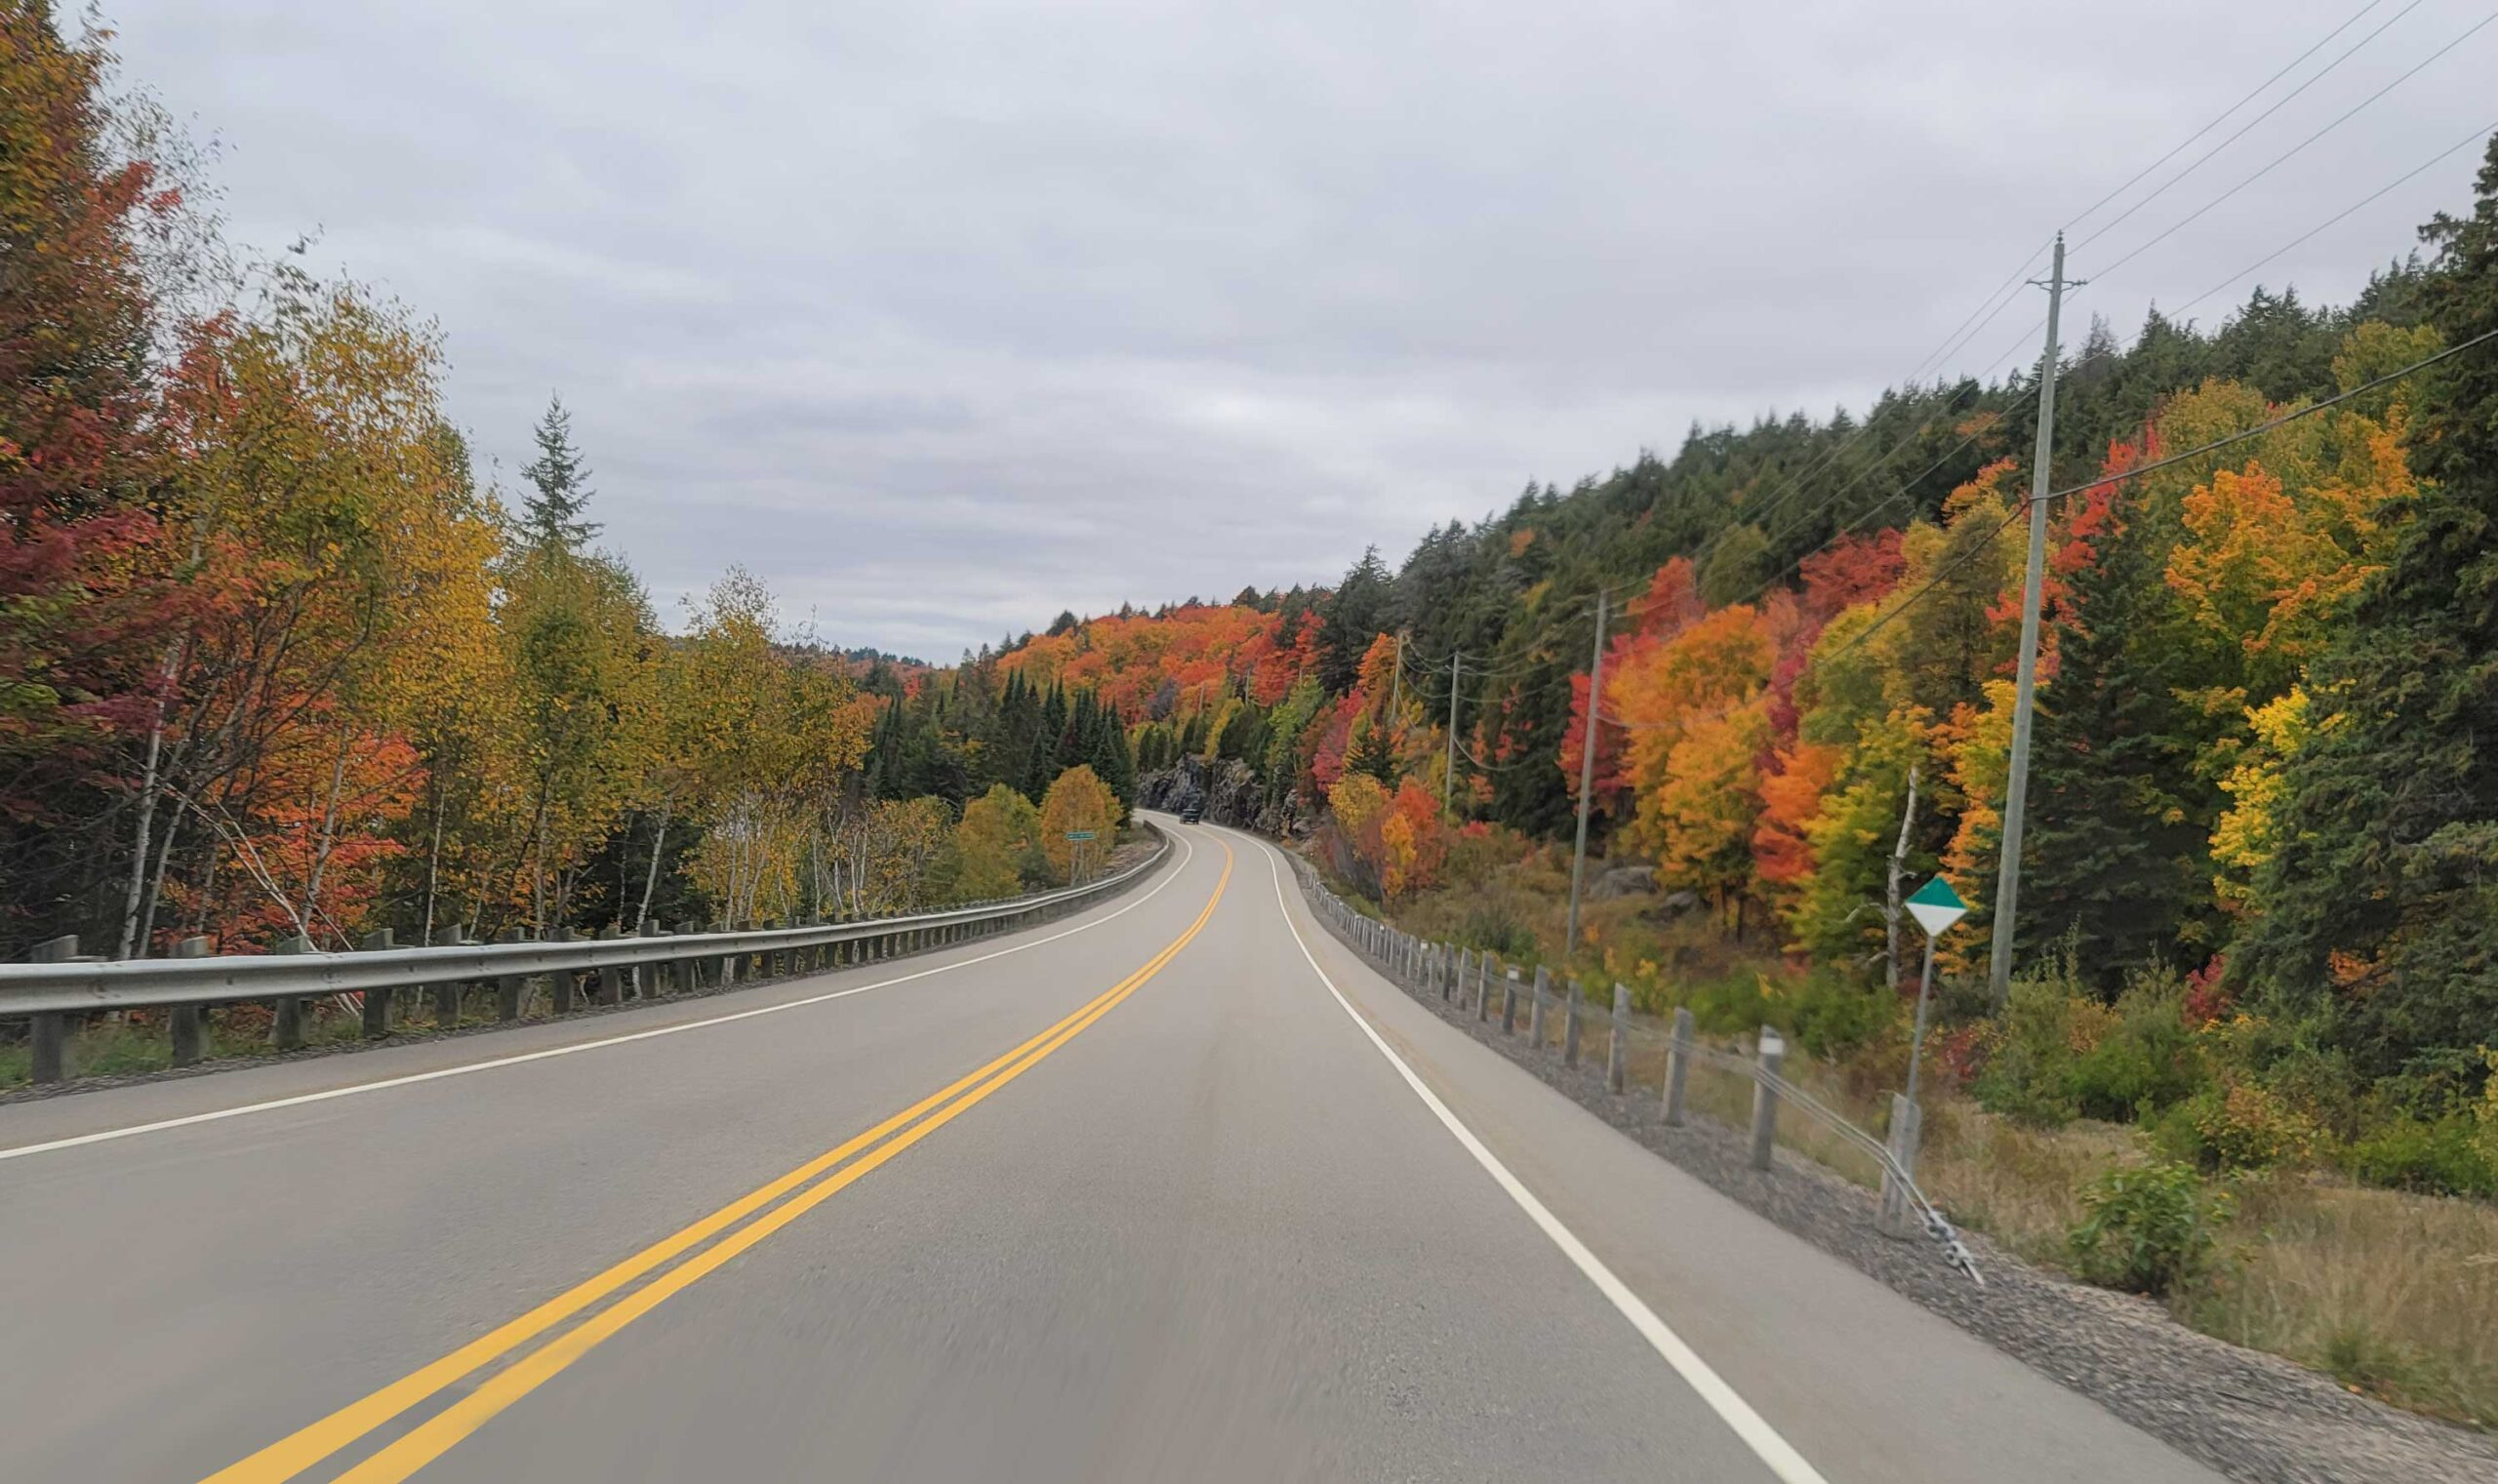 Fall Foliage is Vibrant in The Valley